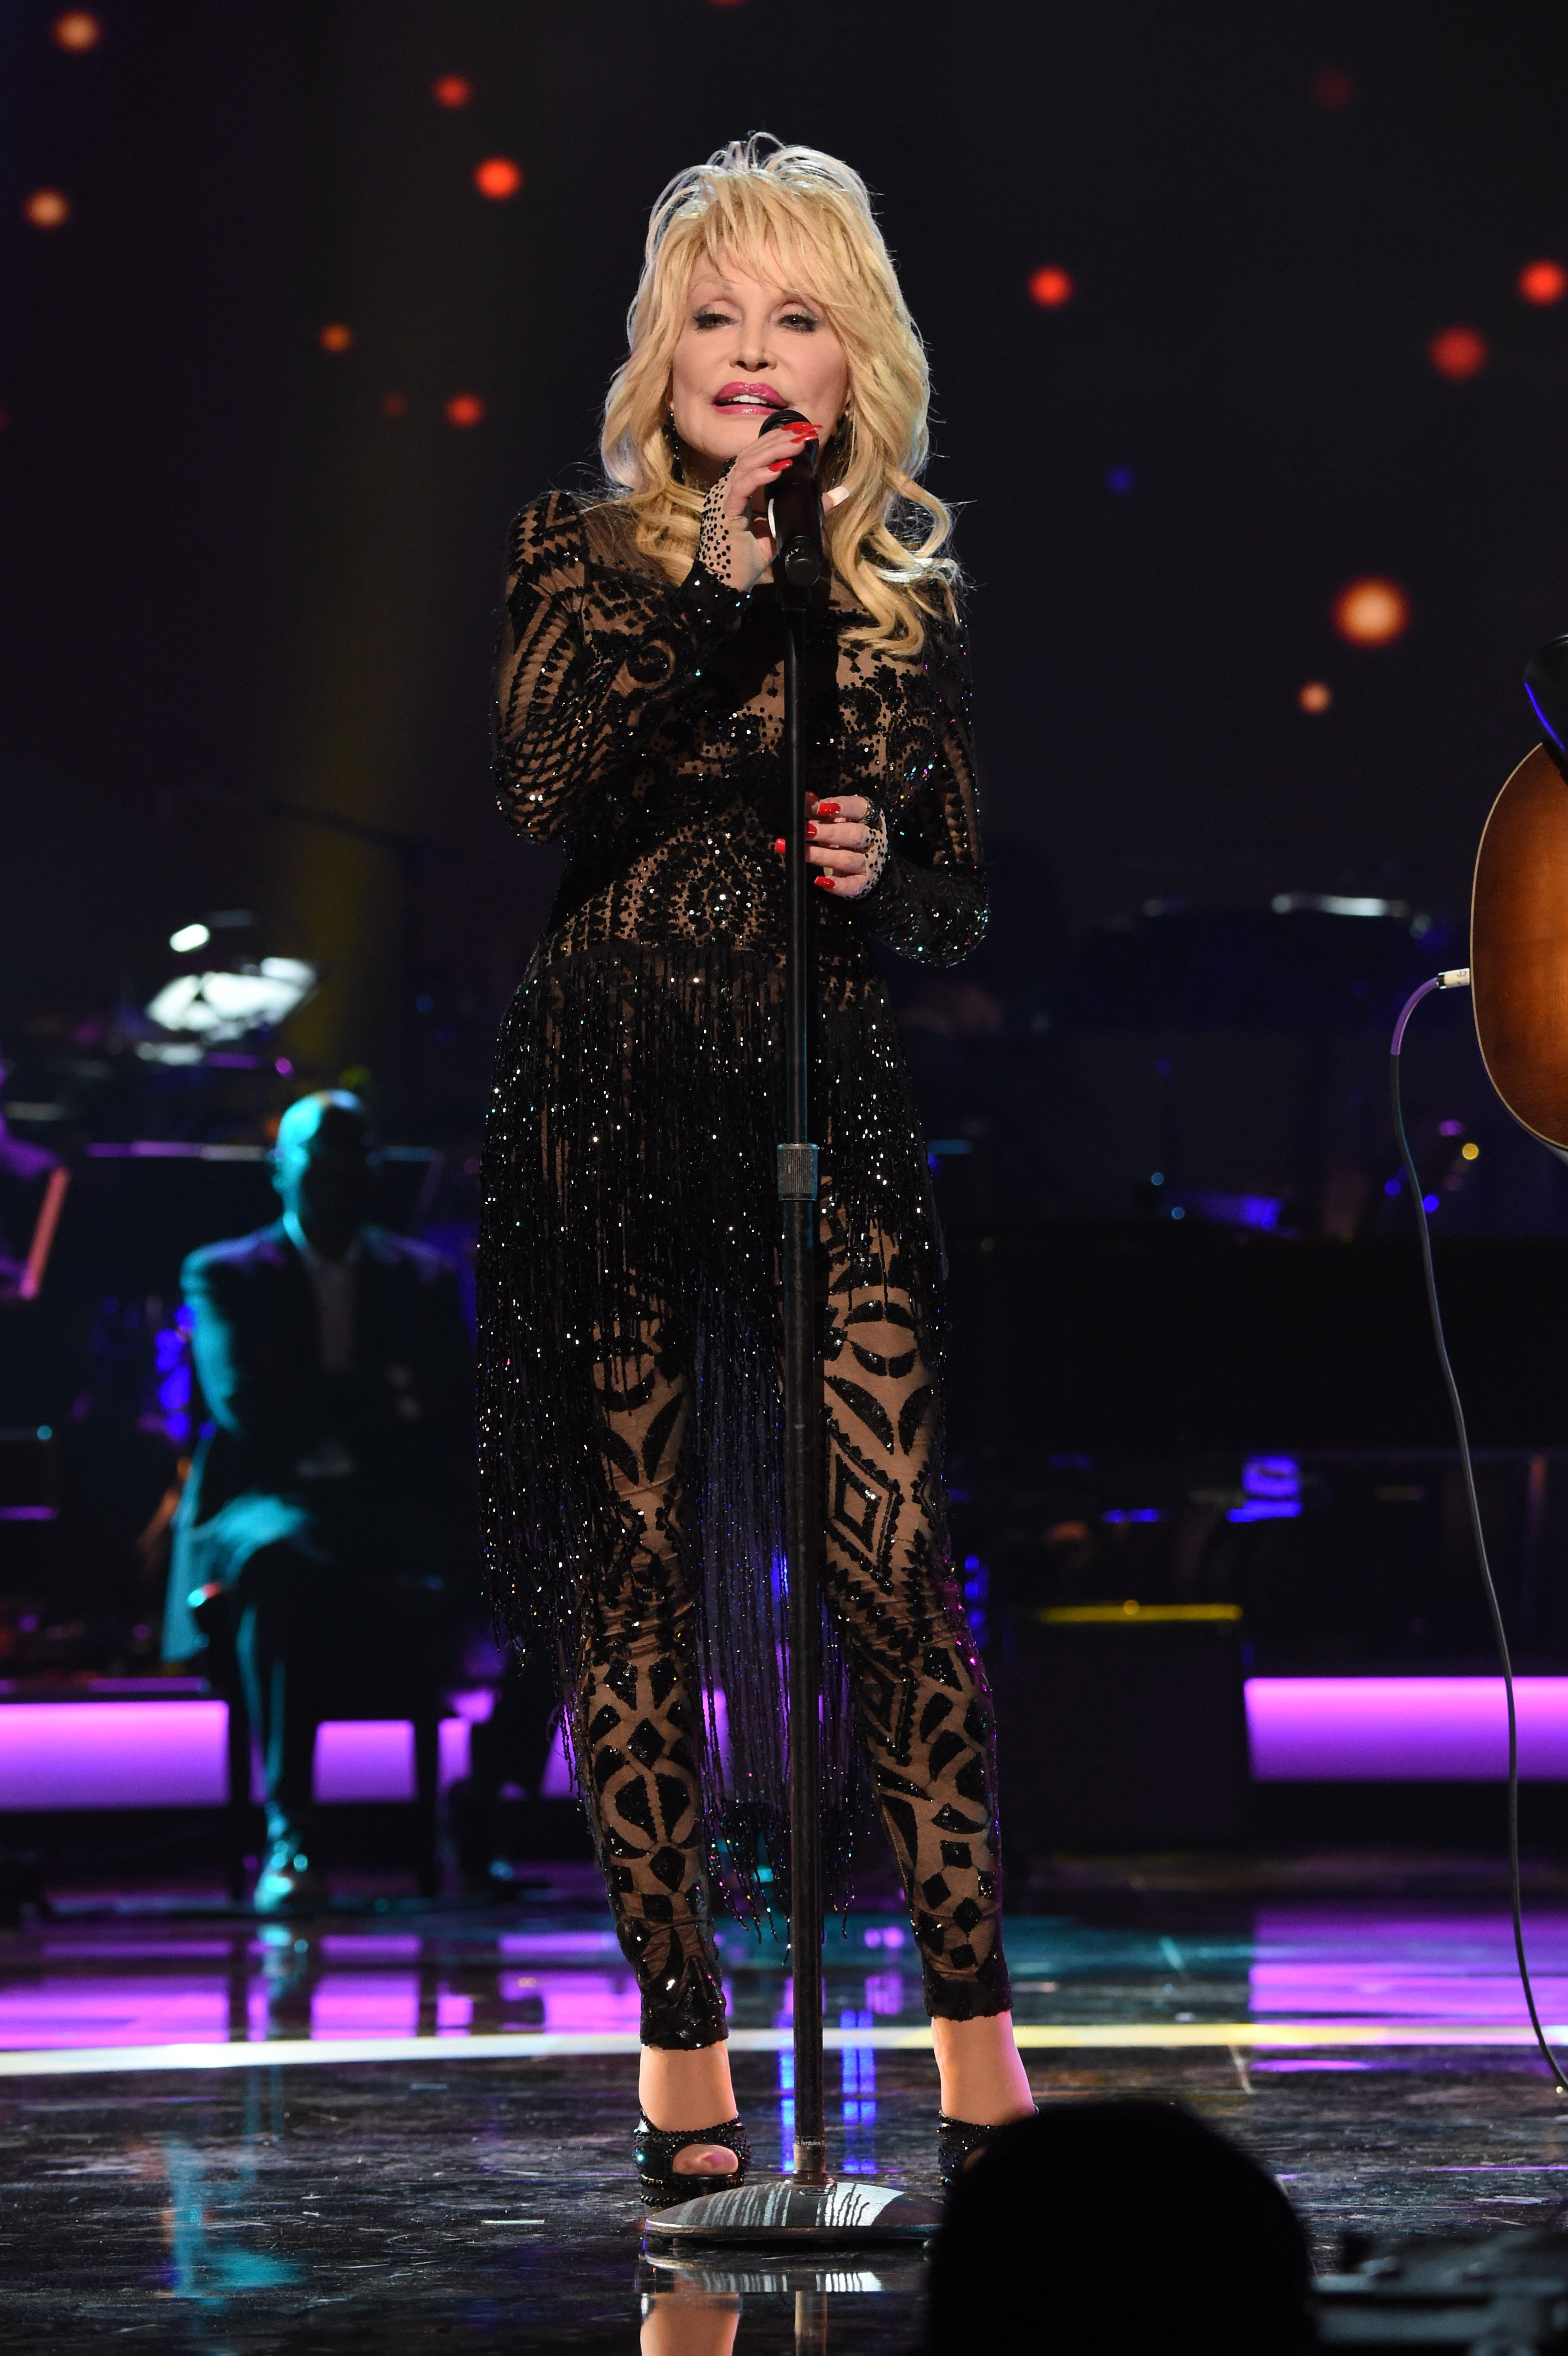 Image Credits: Getty Images / Kevin Mazur | Dolly Parton performs onstage MusiCares Person of the Year honoring Dolly Parton at Los Angeles Convention Center on February 8, 2019 in Los Angeles, California.